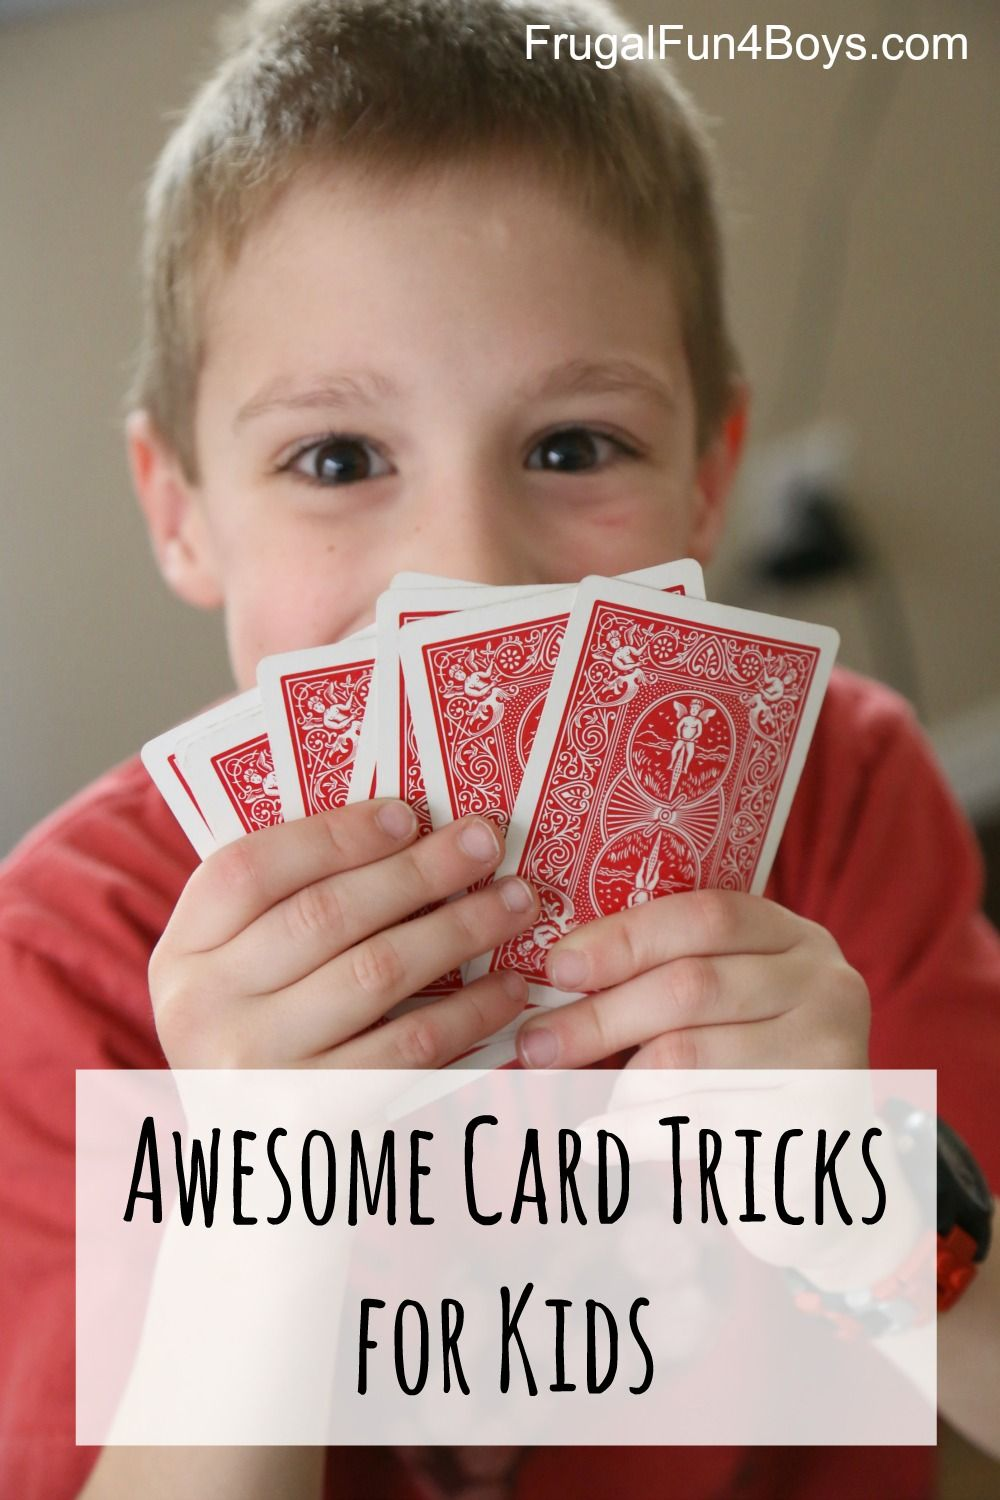 Classic card tricks make a great boredom buster for older kids!  Here are three fun card tricks that kids will have fun mastering and performing for their friends and family. Trick #1:  I Can Guess Your Card! We found this simple trick on Kidspot, although we did the trick in a slightly different way. Start...Read More »